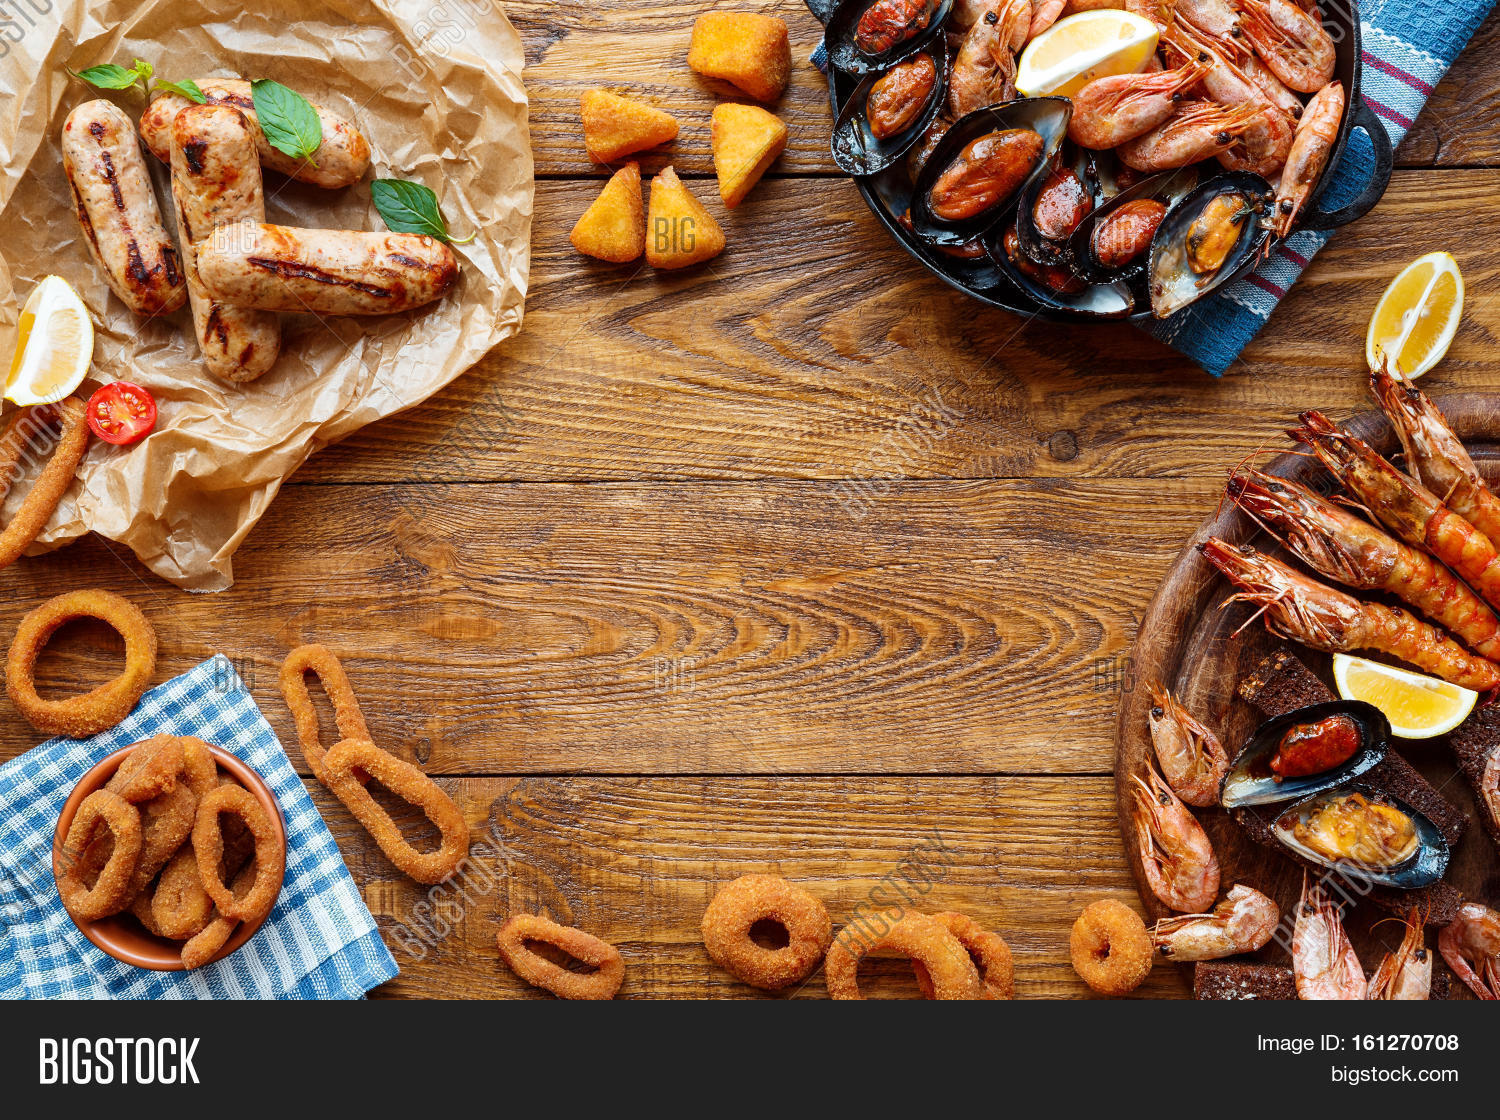 Seafood Platter Meat On Wood Frame Image Amp Photo Bigstock